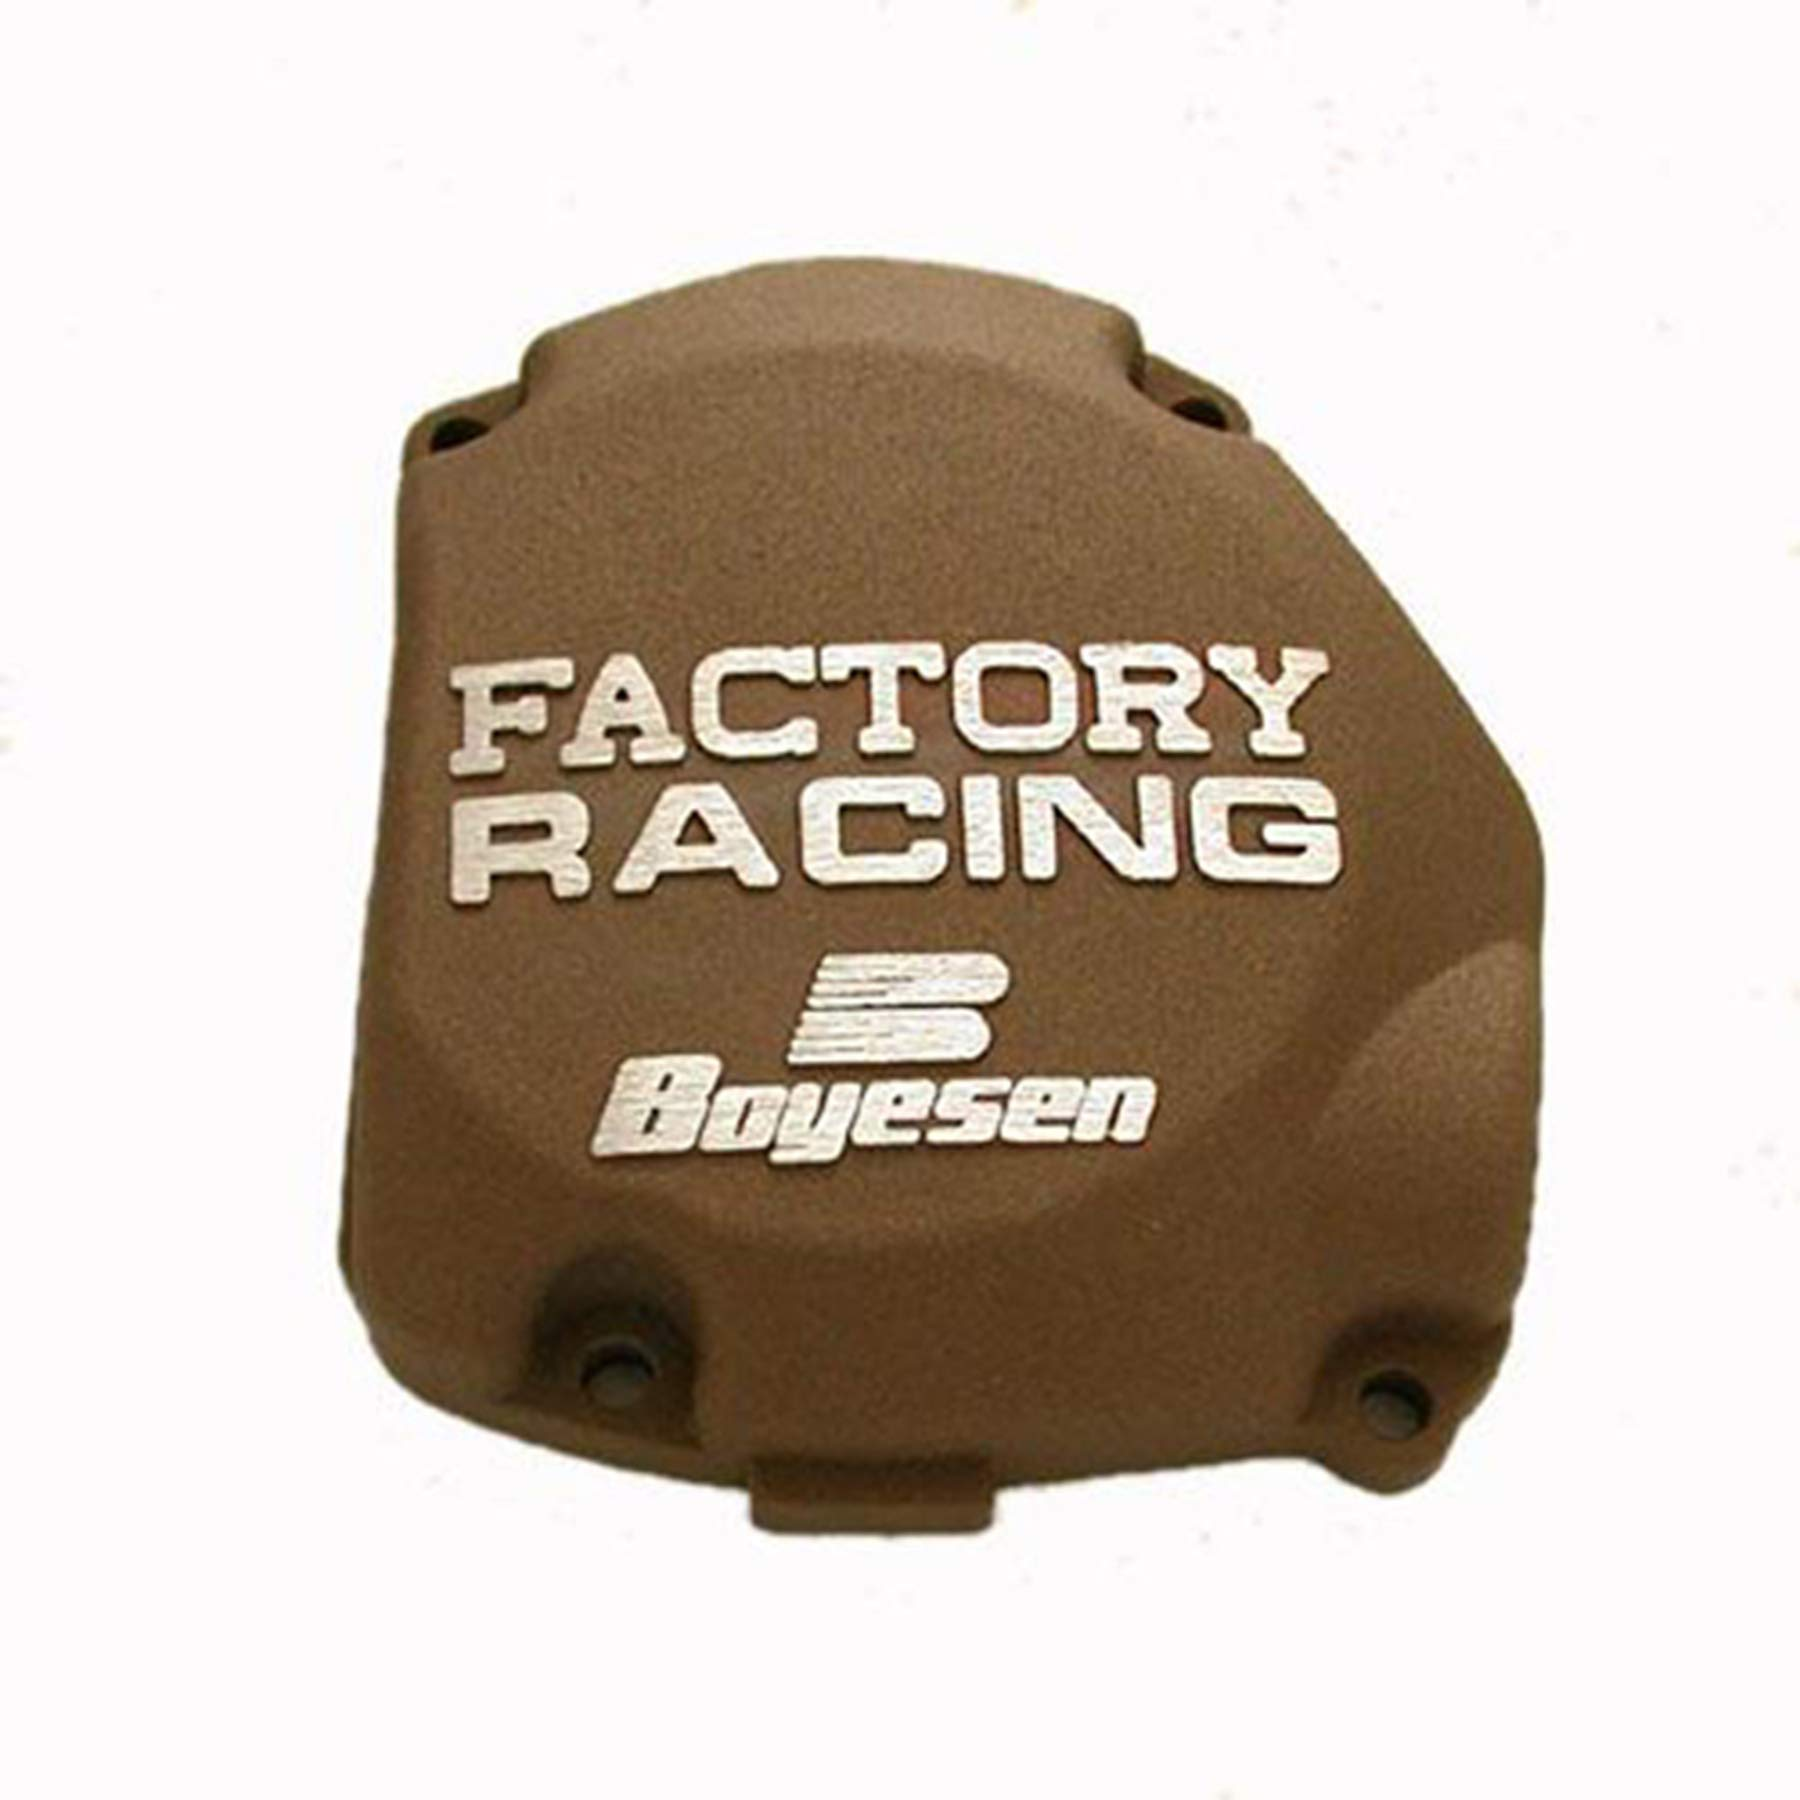 Factory Ignition Cover - Magnesium 2003 Suzuki RM125 Offroad Motorcycle